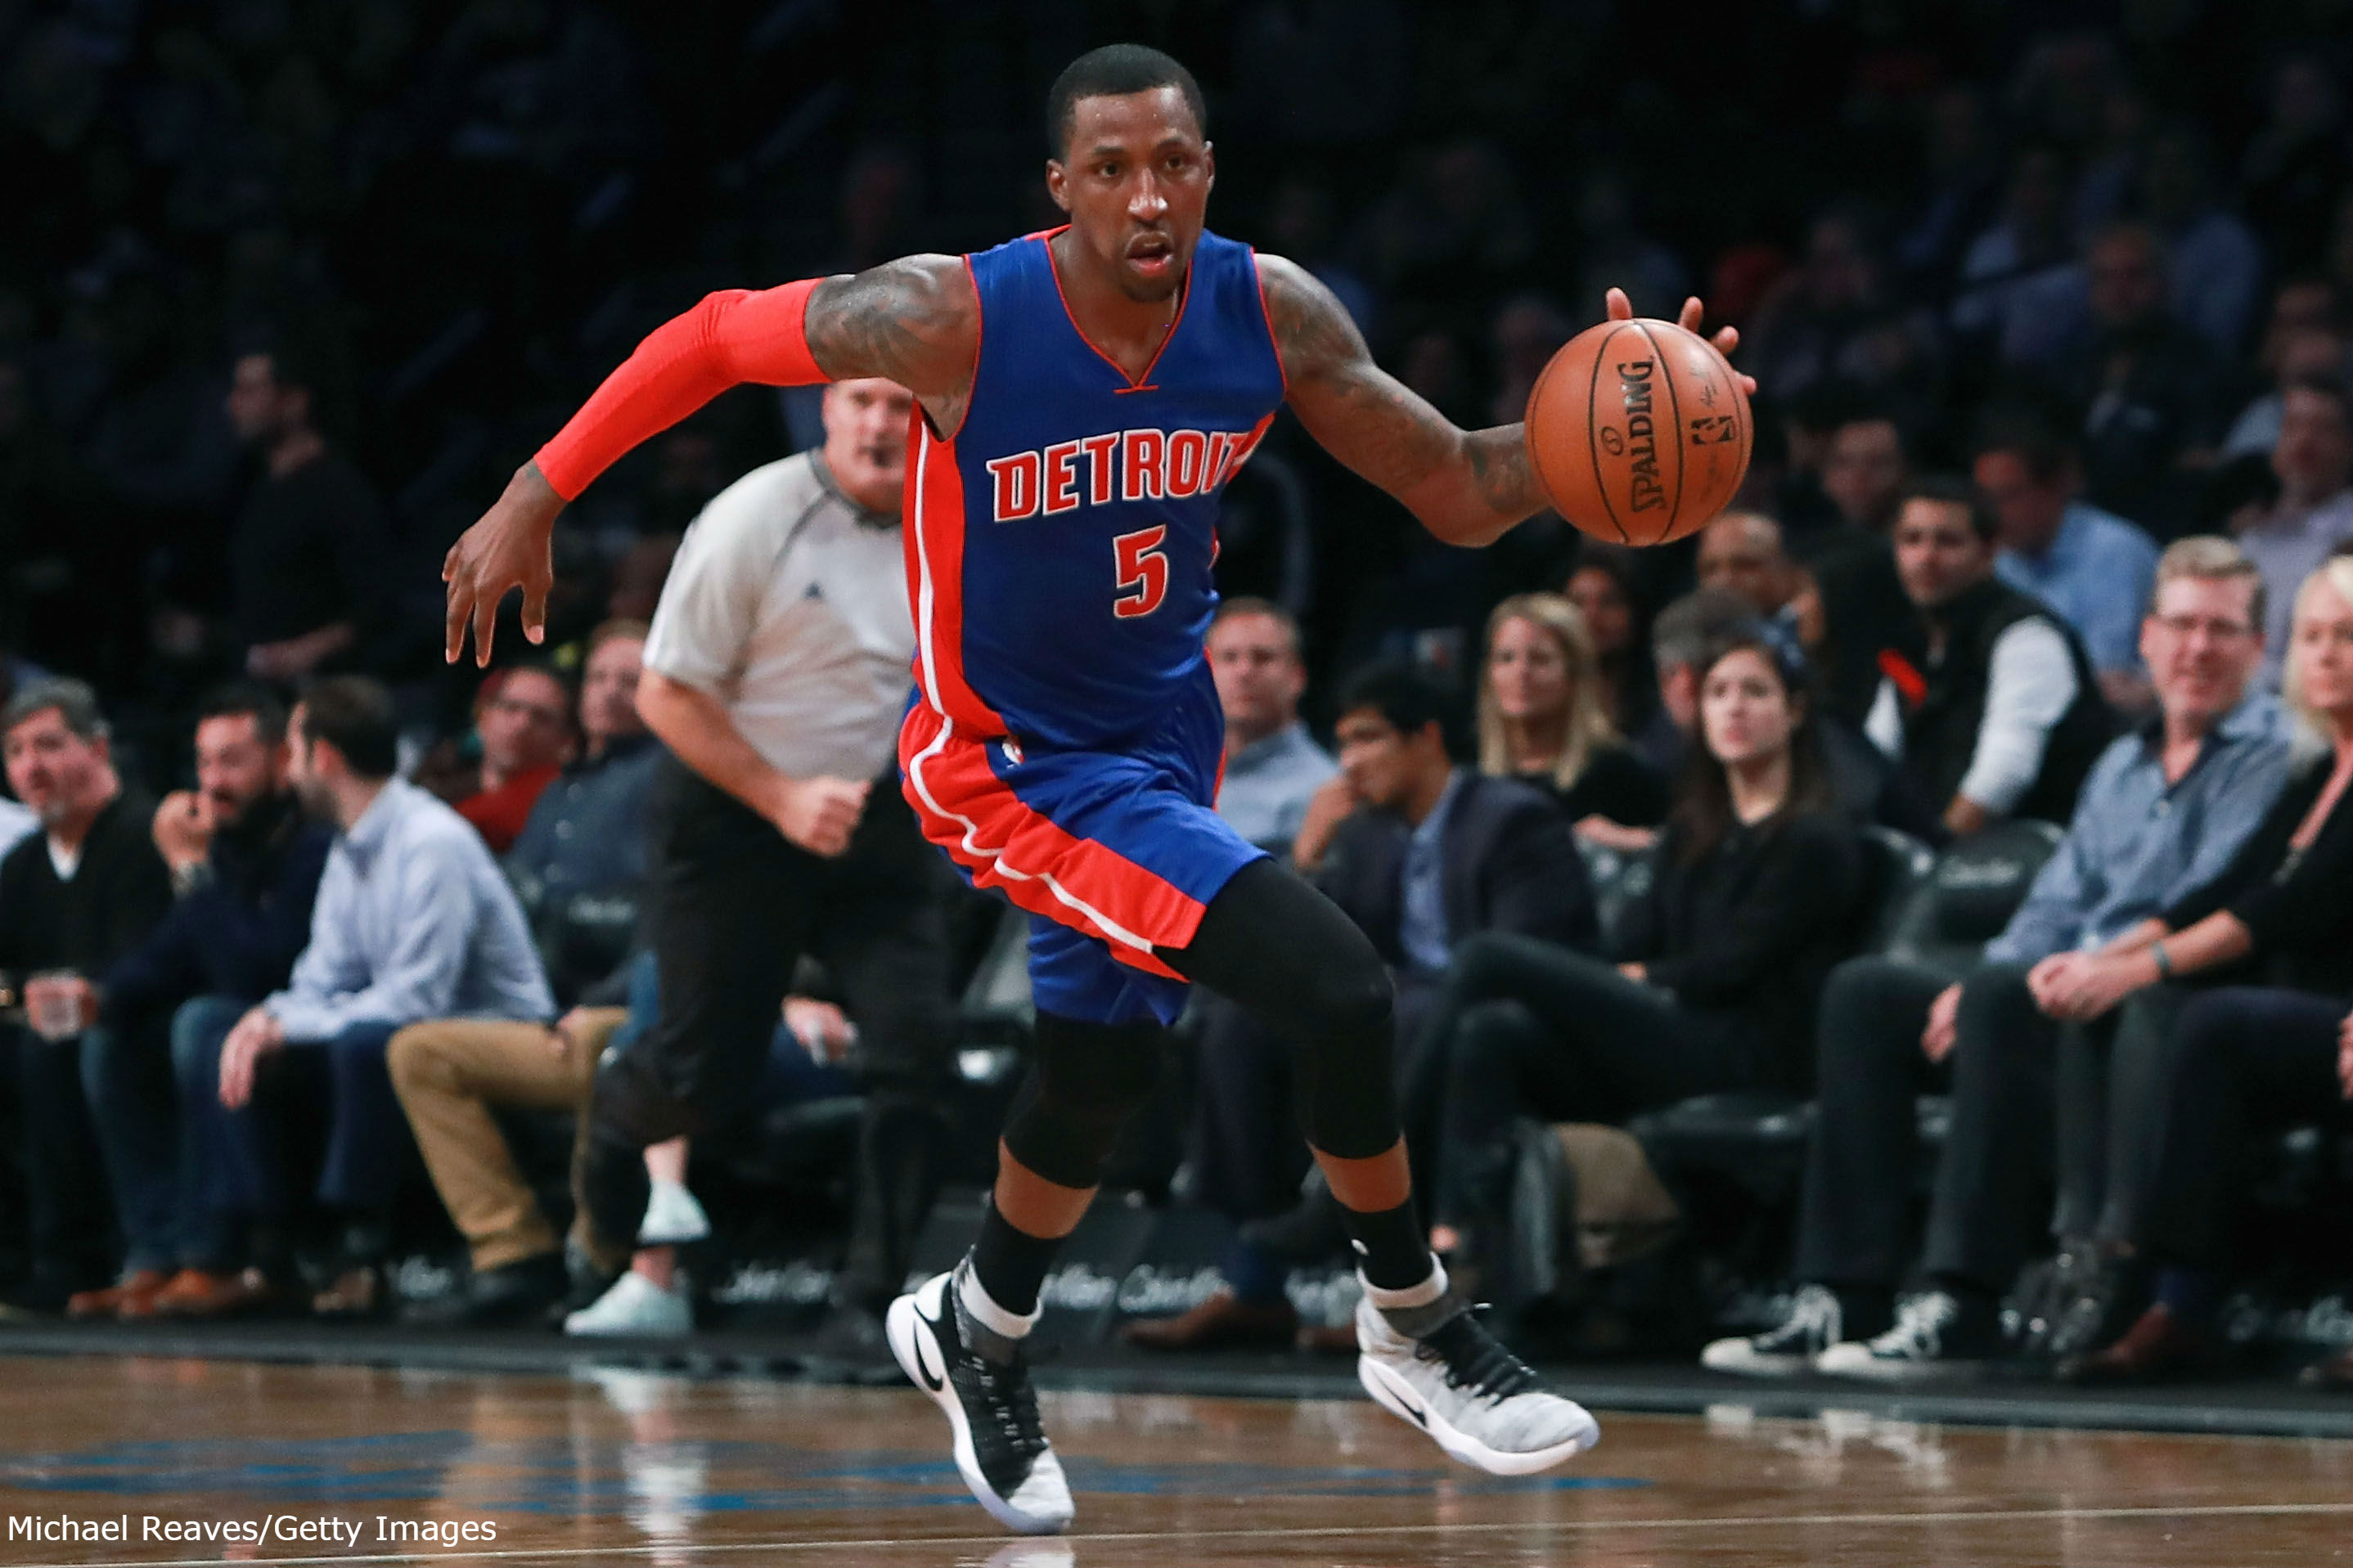 Kentavious Caldwell-Pope arrested on suspicion of DUI